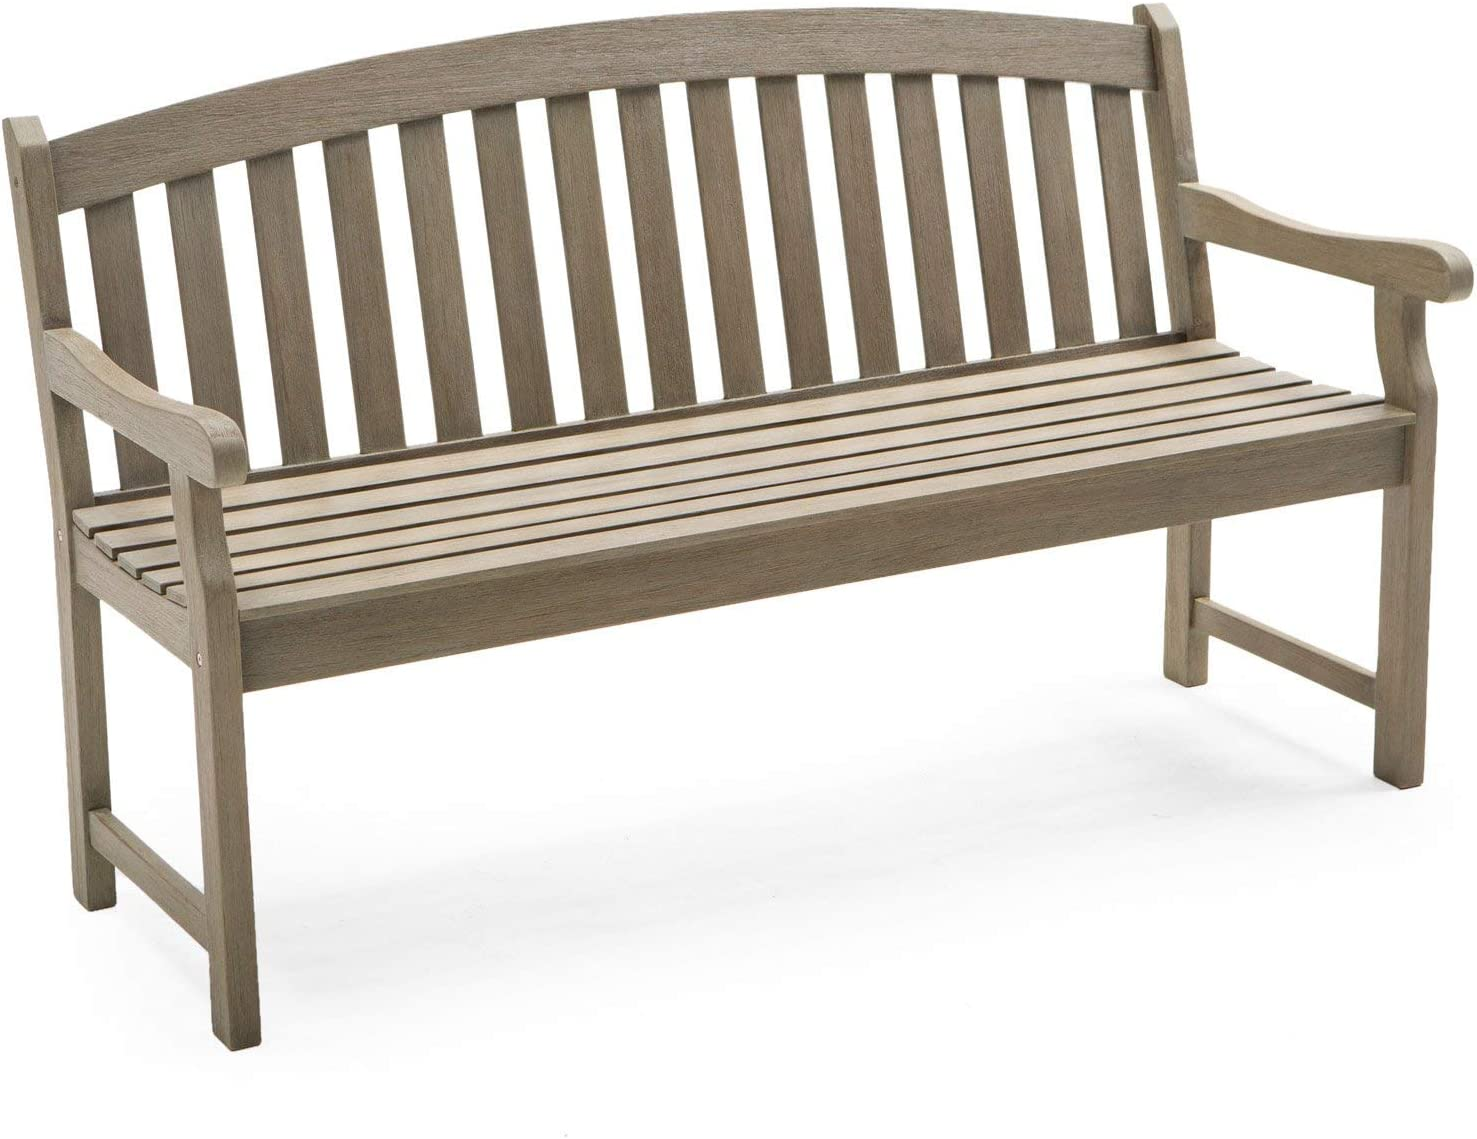 Coral Coast Amherst Curved Back 5 ft. Outdoor Wood Garden Bench Driftwood